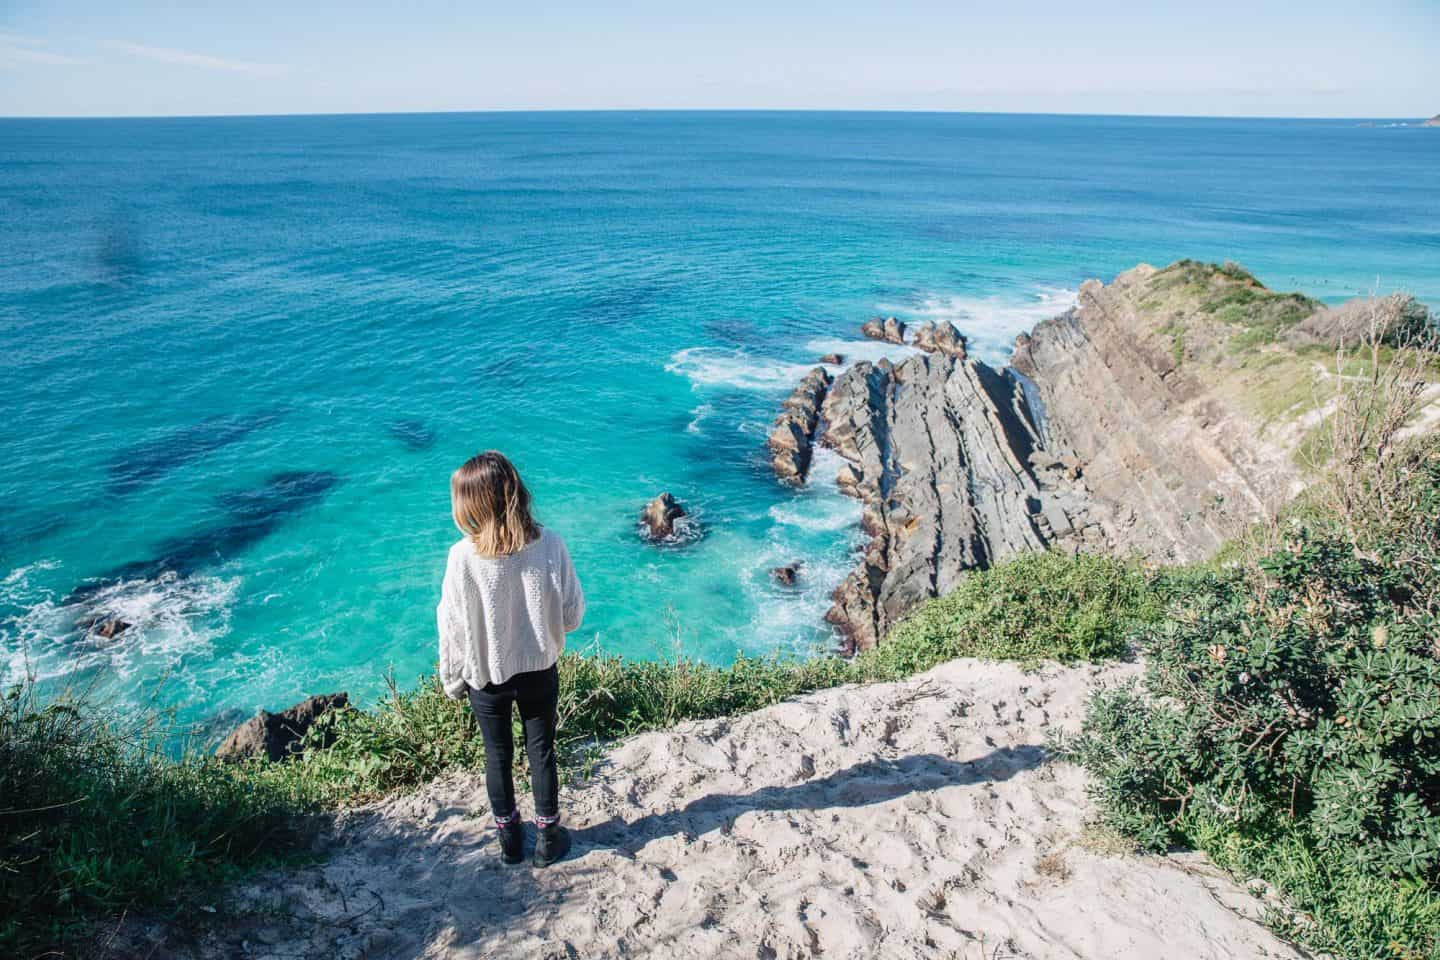 Forster nsw, things to do in forster, what to do in forster, things to do forster, camping in forster, beaches in forster, beaches at forster, bennetts head lookout